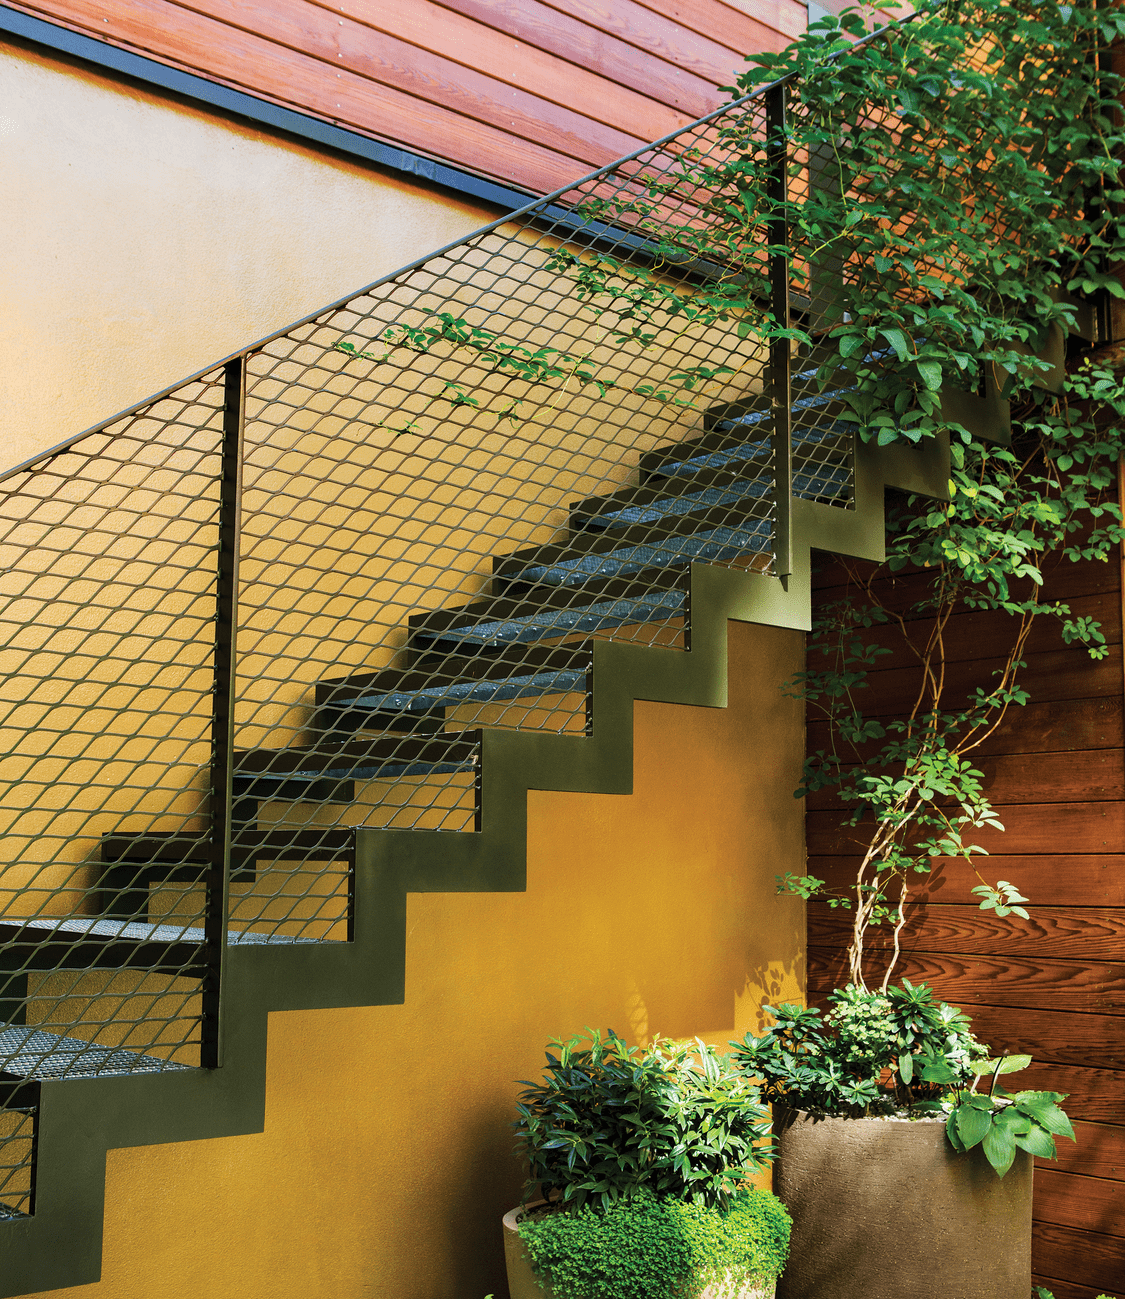 The zig-zagging staircase